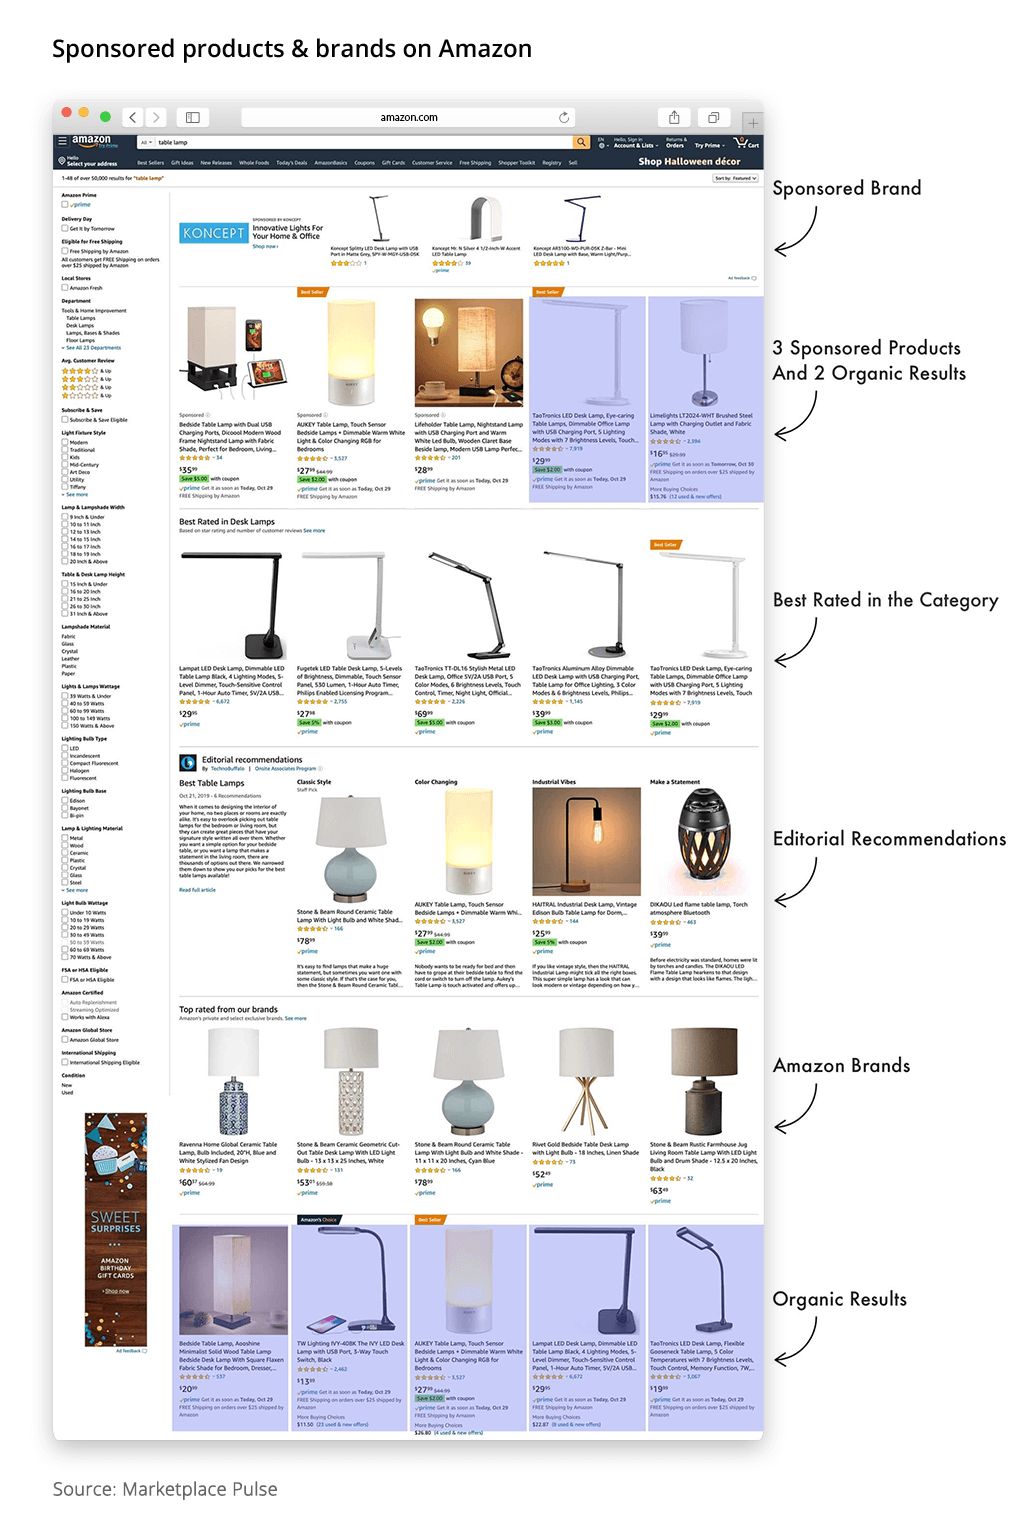 ecommerce amazon sponsored products brands